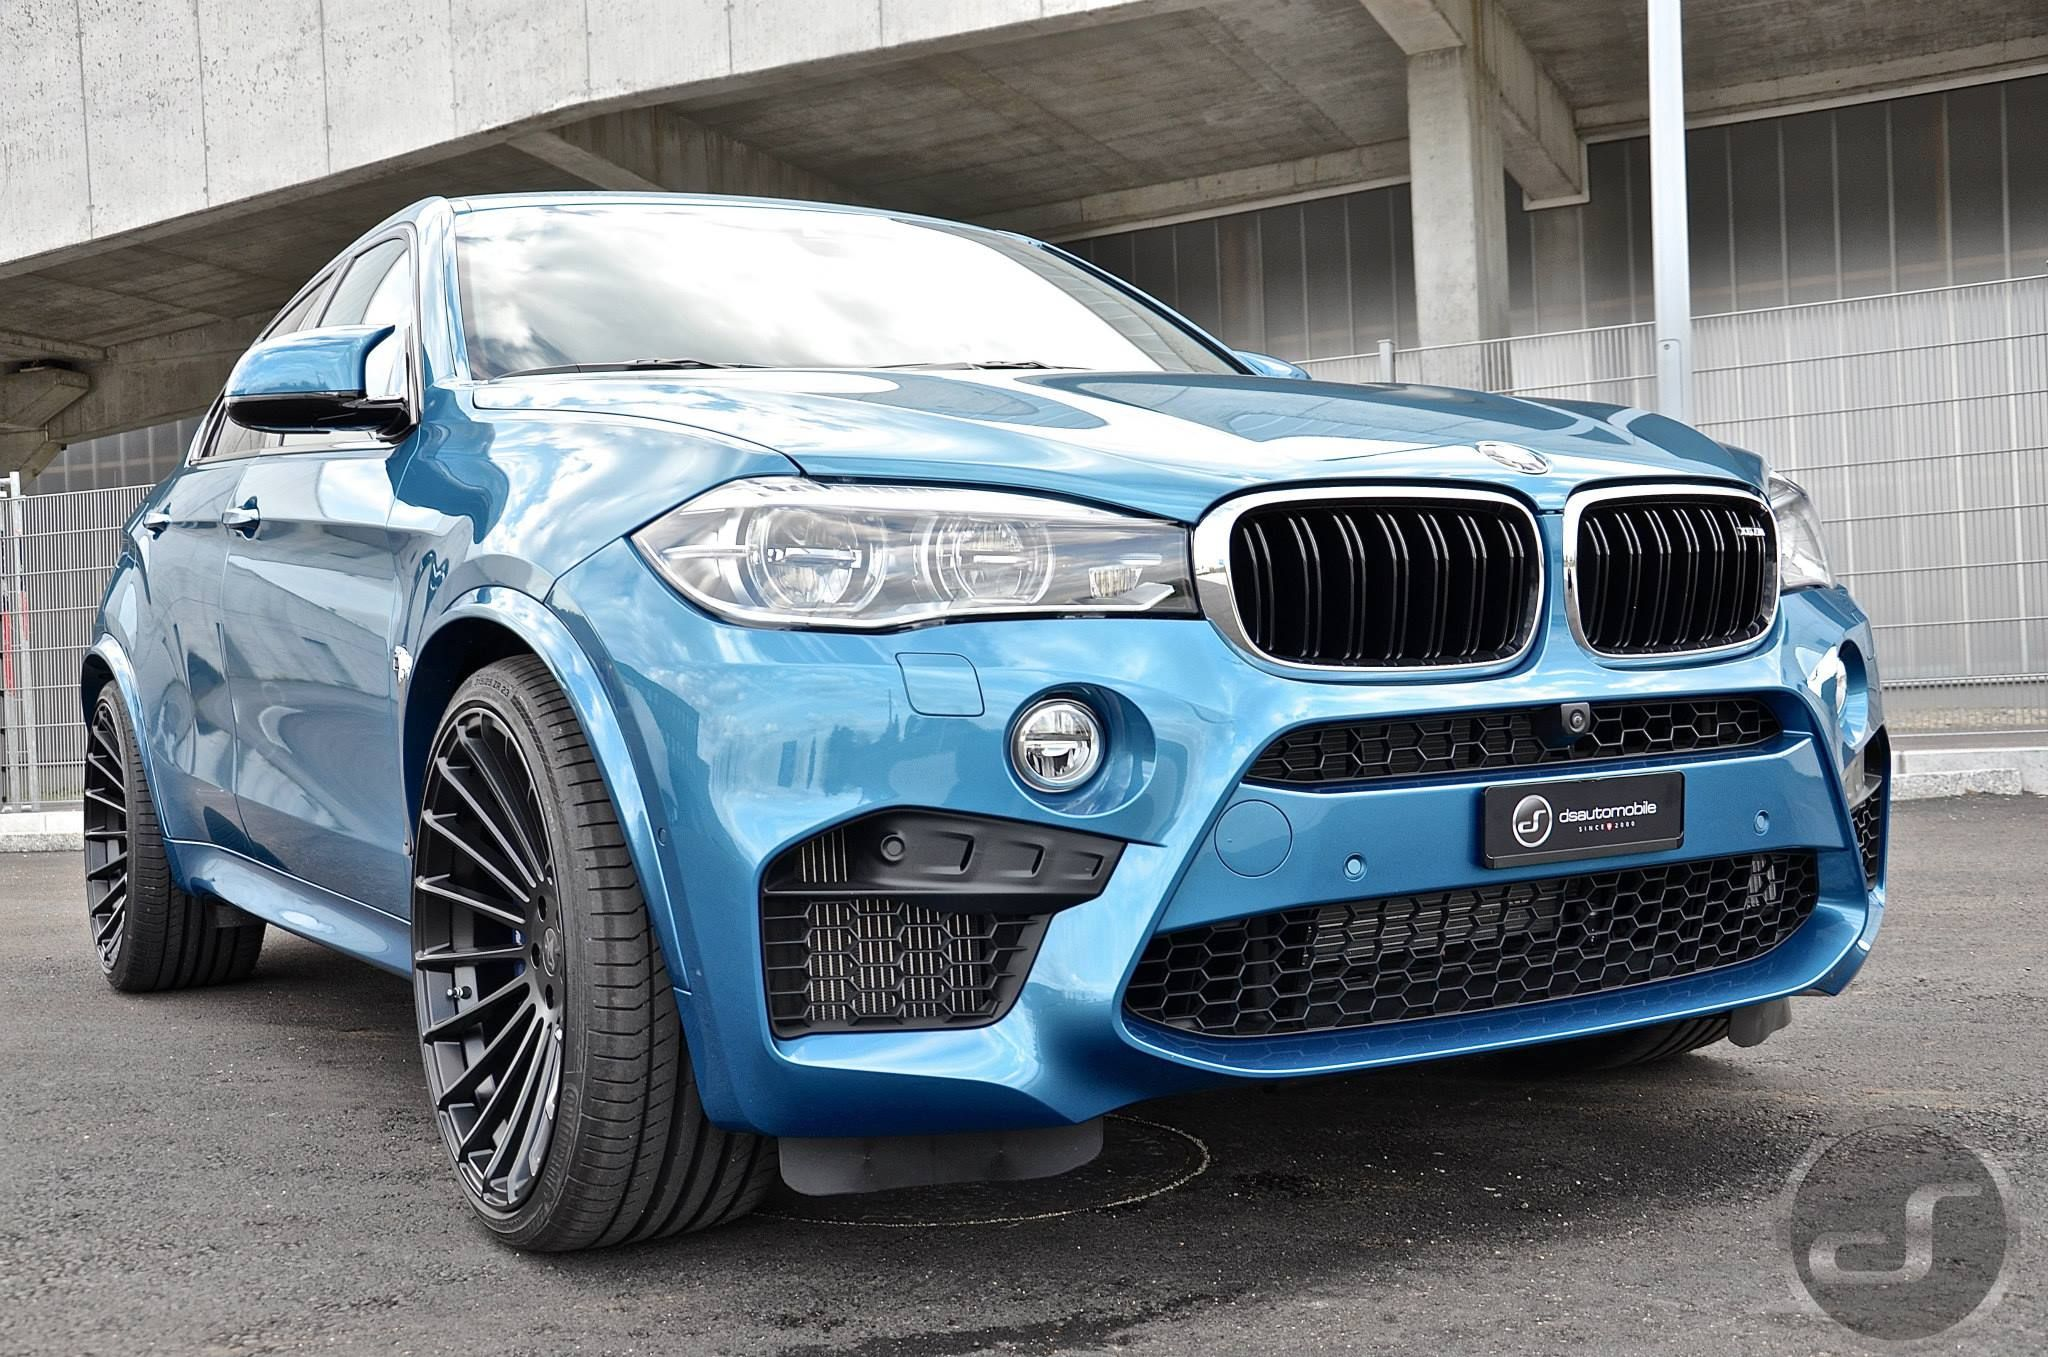 bmw x6 m by hamann 4x4 pinterest voiture. Black Bedroom Furniture Sets. Home Design Ideas